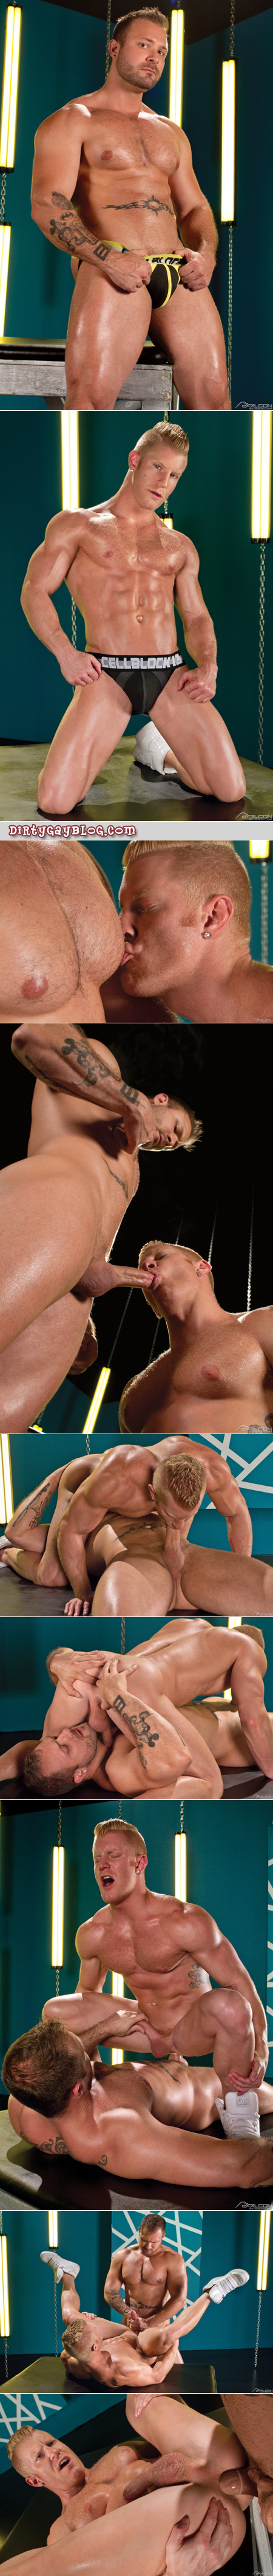 Ginger blonde getting fucked by a beefy muscle bear.